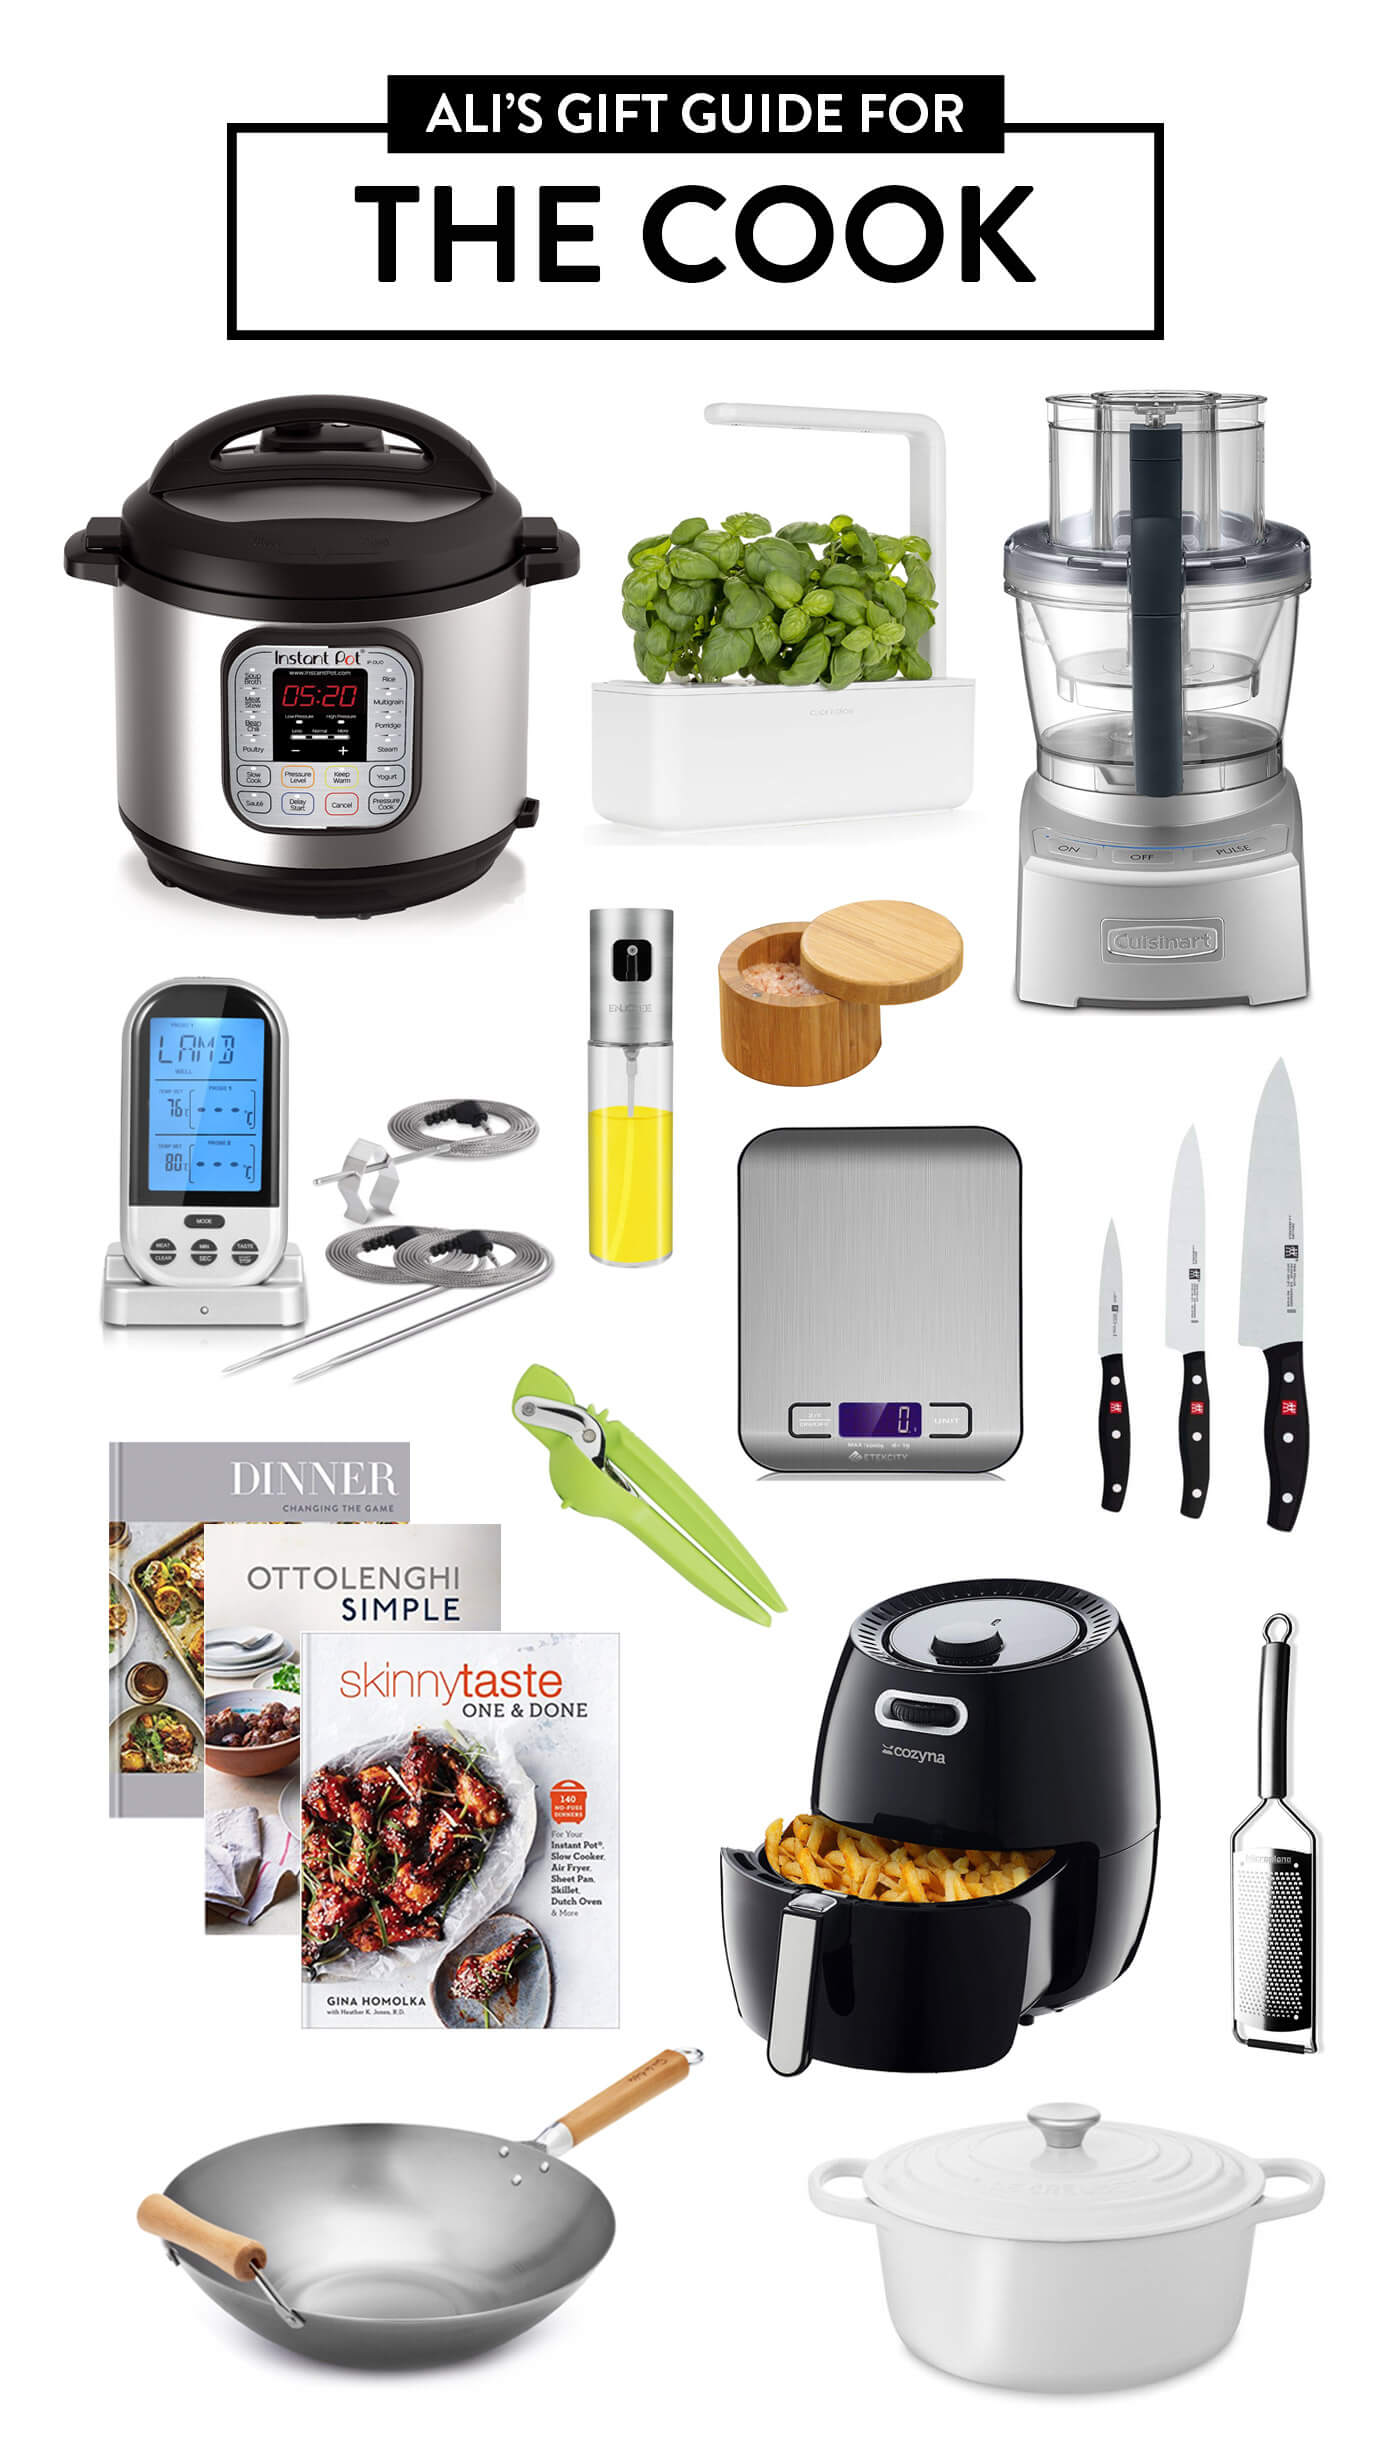 2018 Gimme Some Oven Holiday Gift Guide: The Cook